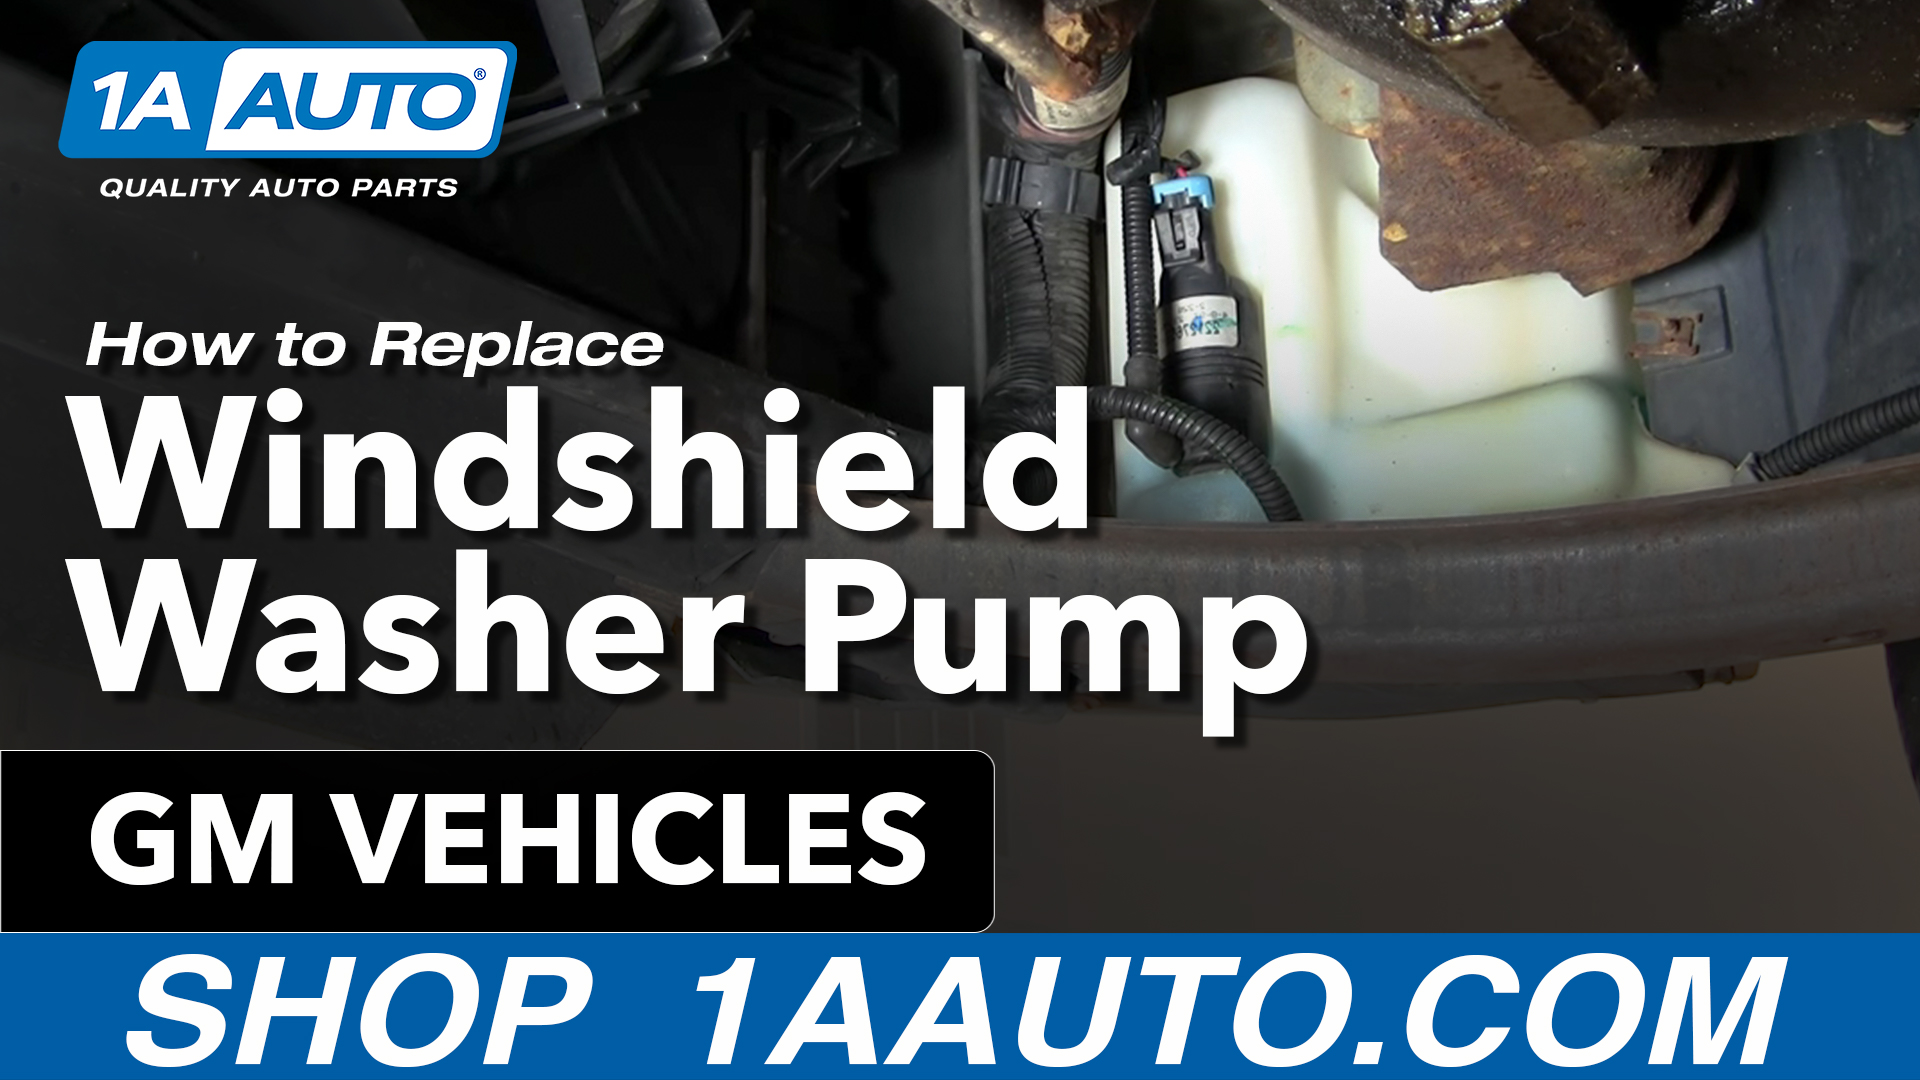 How to Replace Windshield Washer Pump 95-01 Pontiac Sunfire